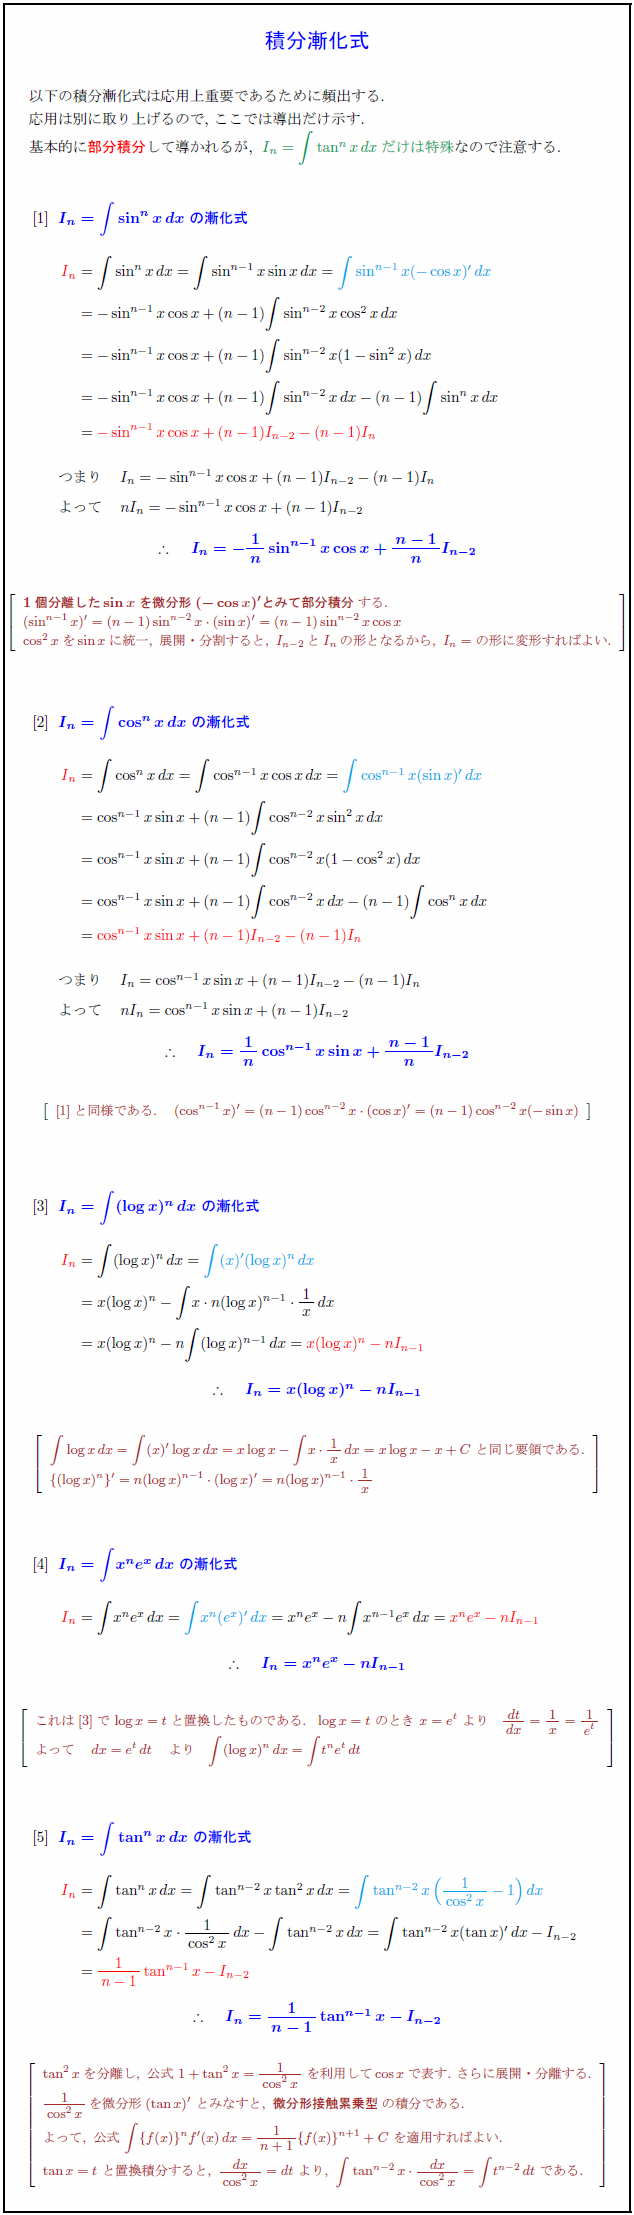 integration-recurrence-formula